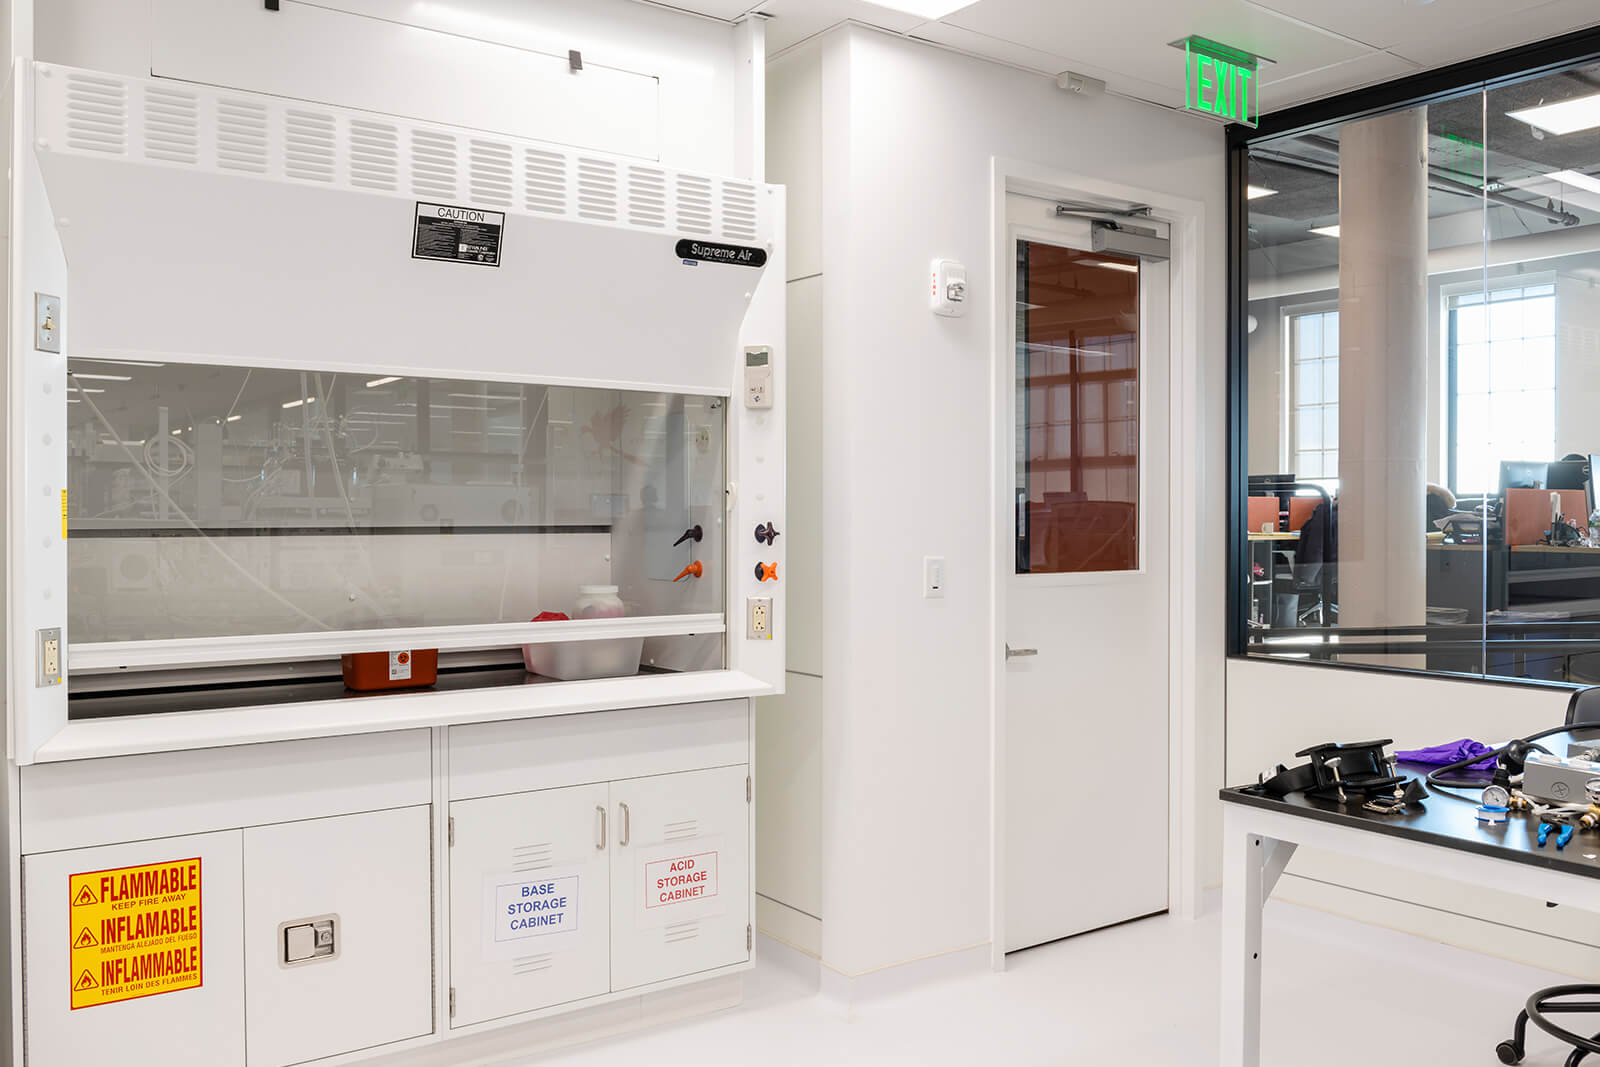 design build services firm for ginko bioworks